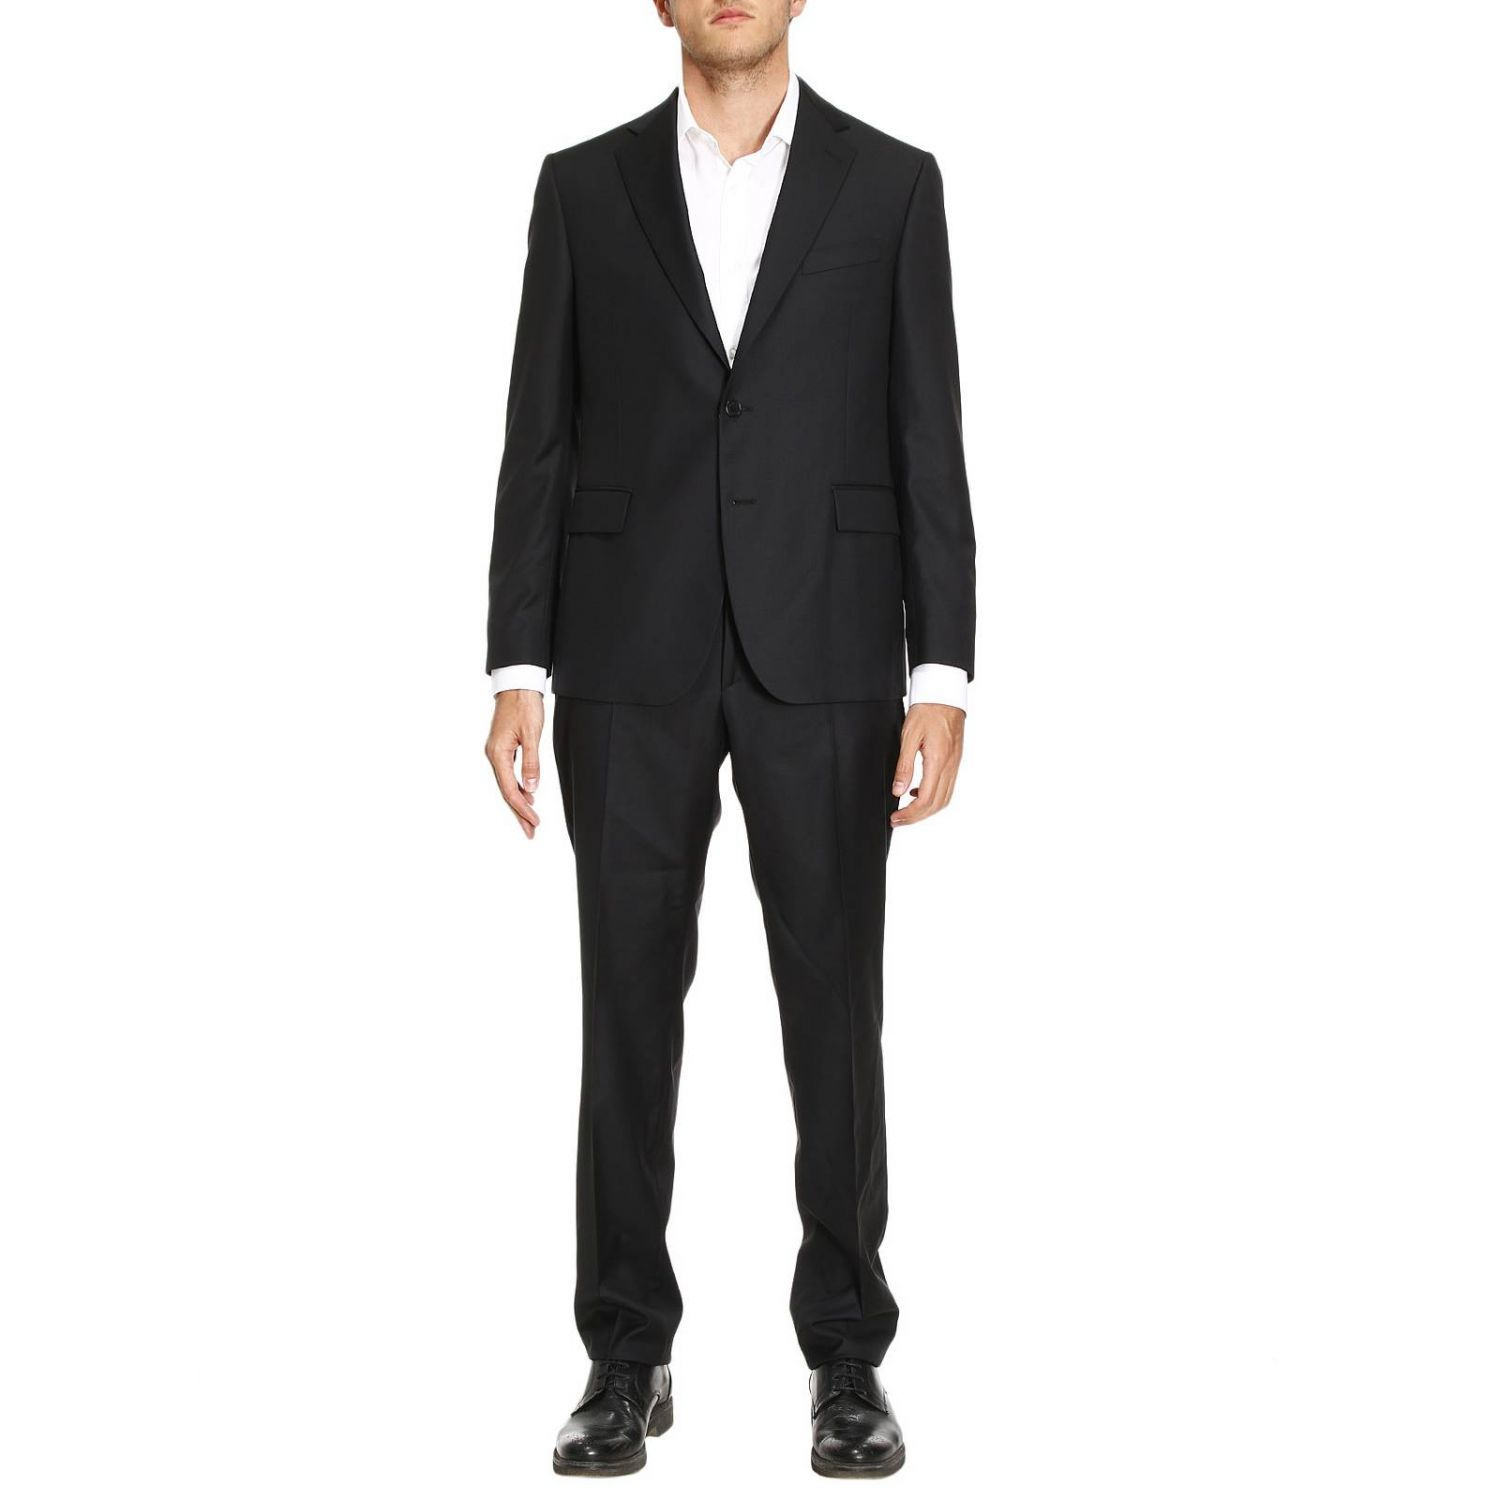 Versace - Suit Suit Men Versace - Black, Men's Suits